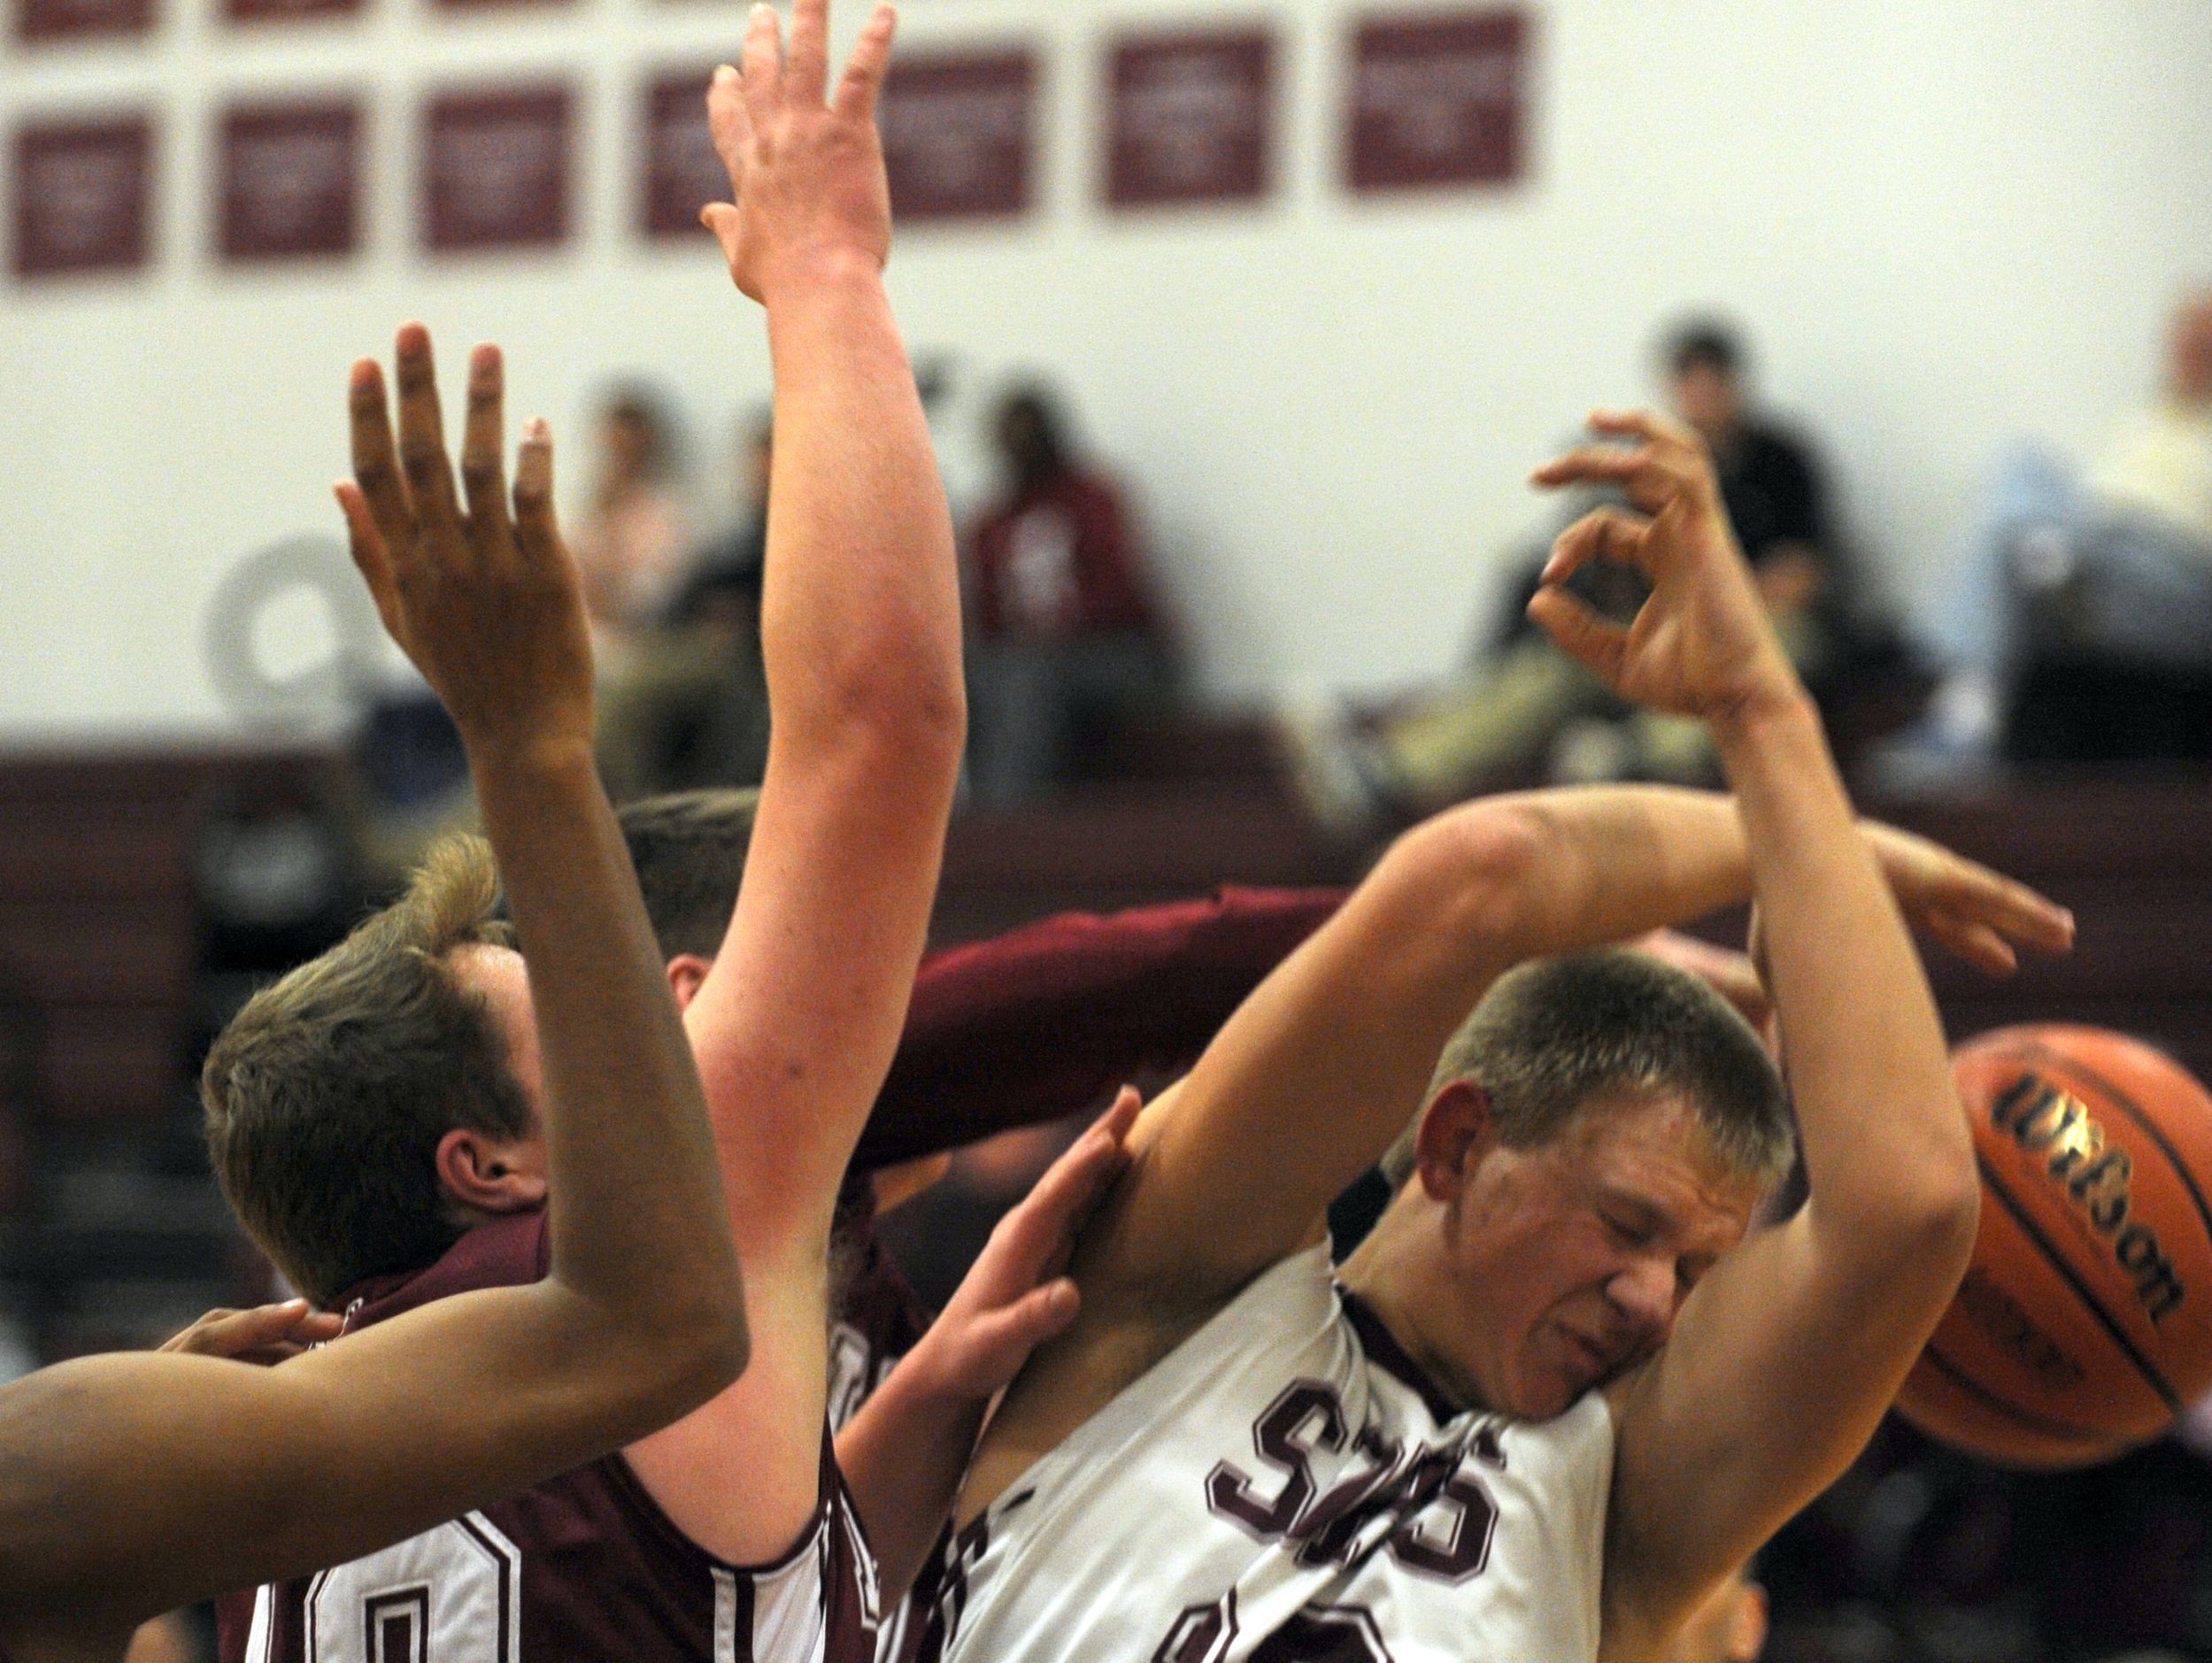 Stuarts Draft's #33, John Gumann is fouled while trying to pull in a rebound in the second quarter of their boys basketball game against Luray High School Monday, Jan. 11, 2016